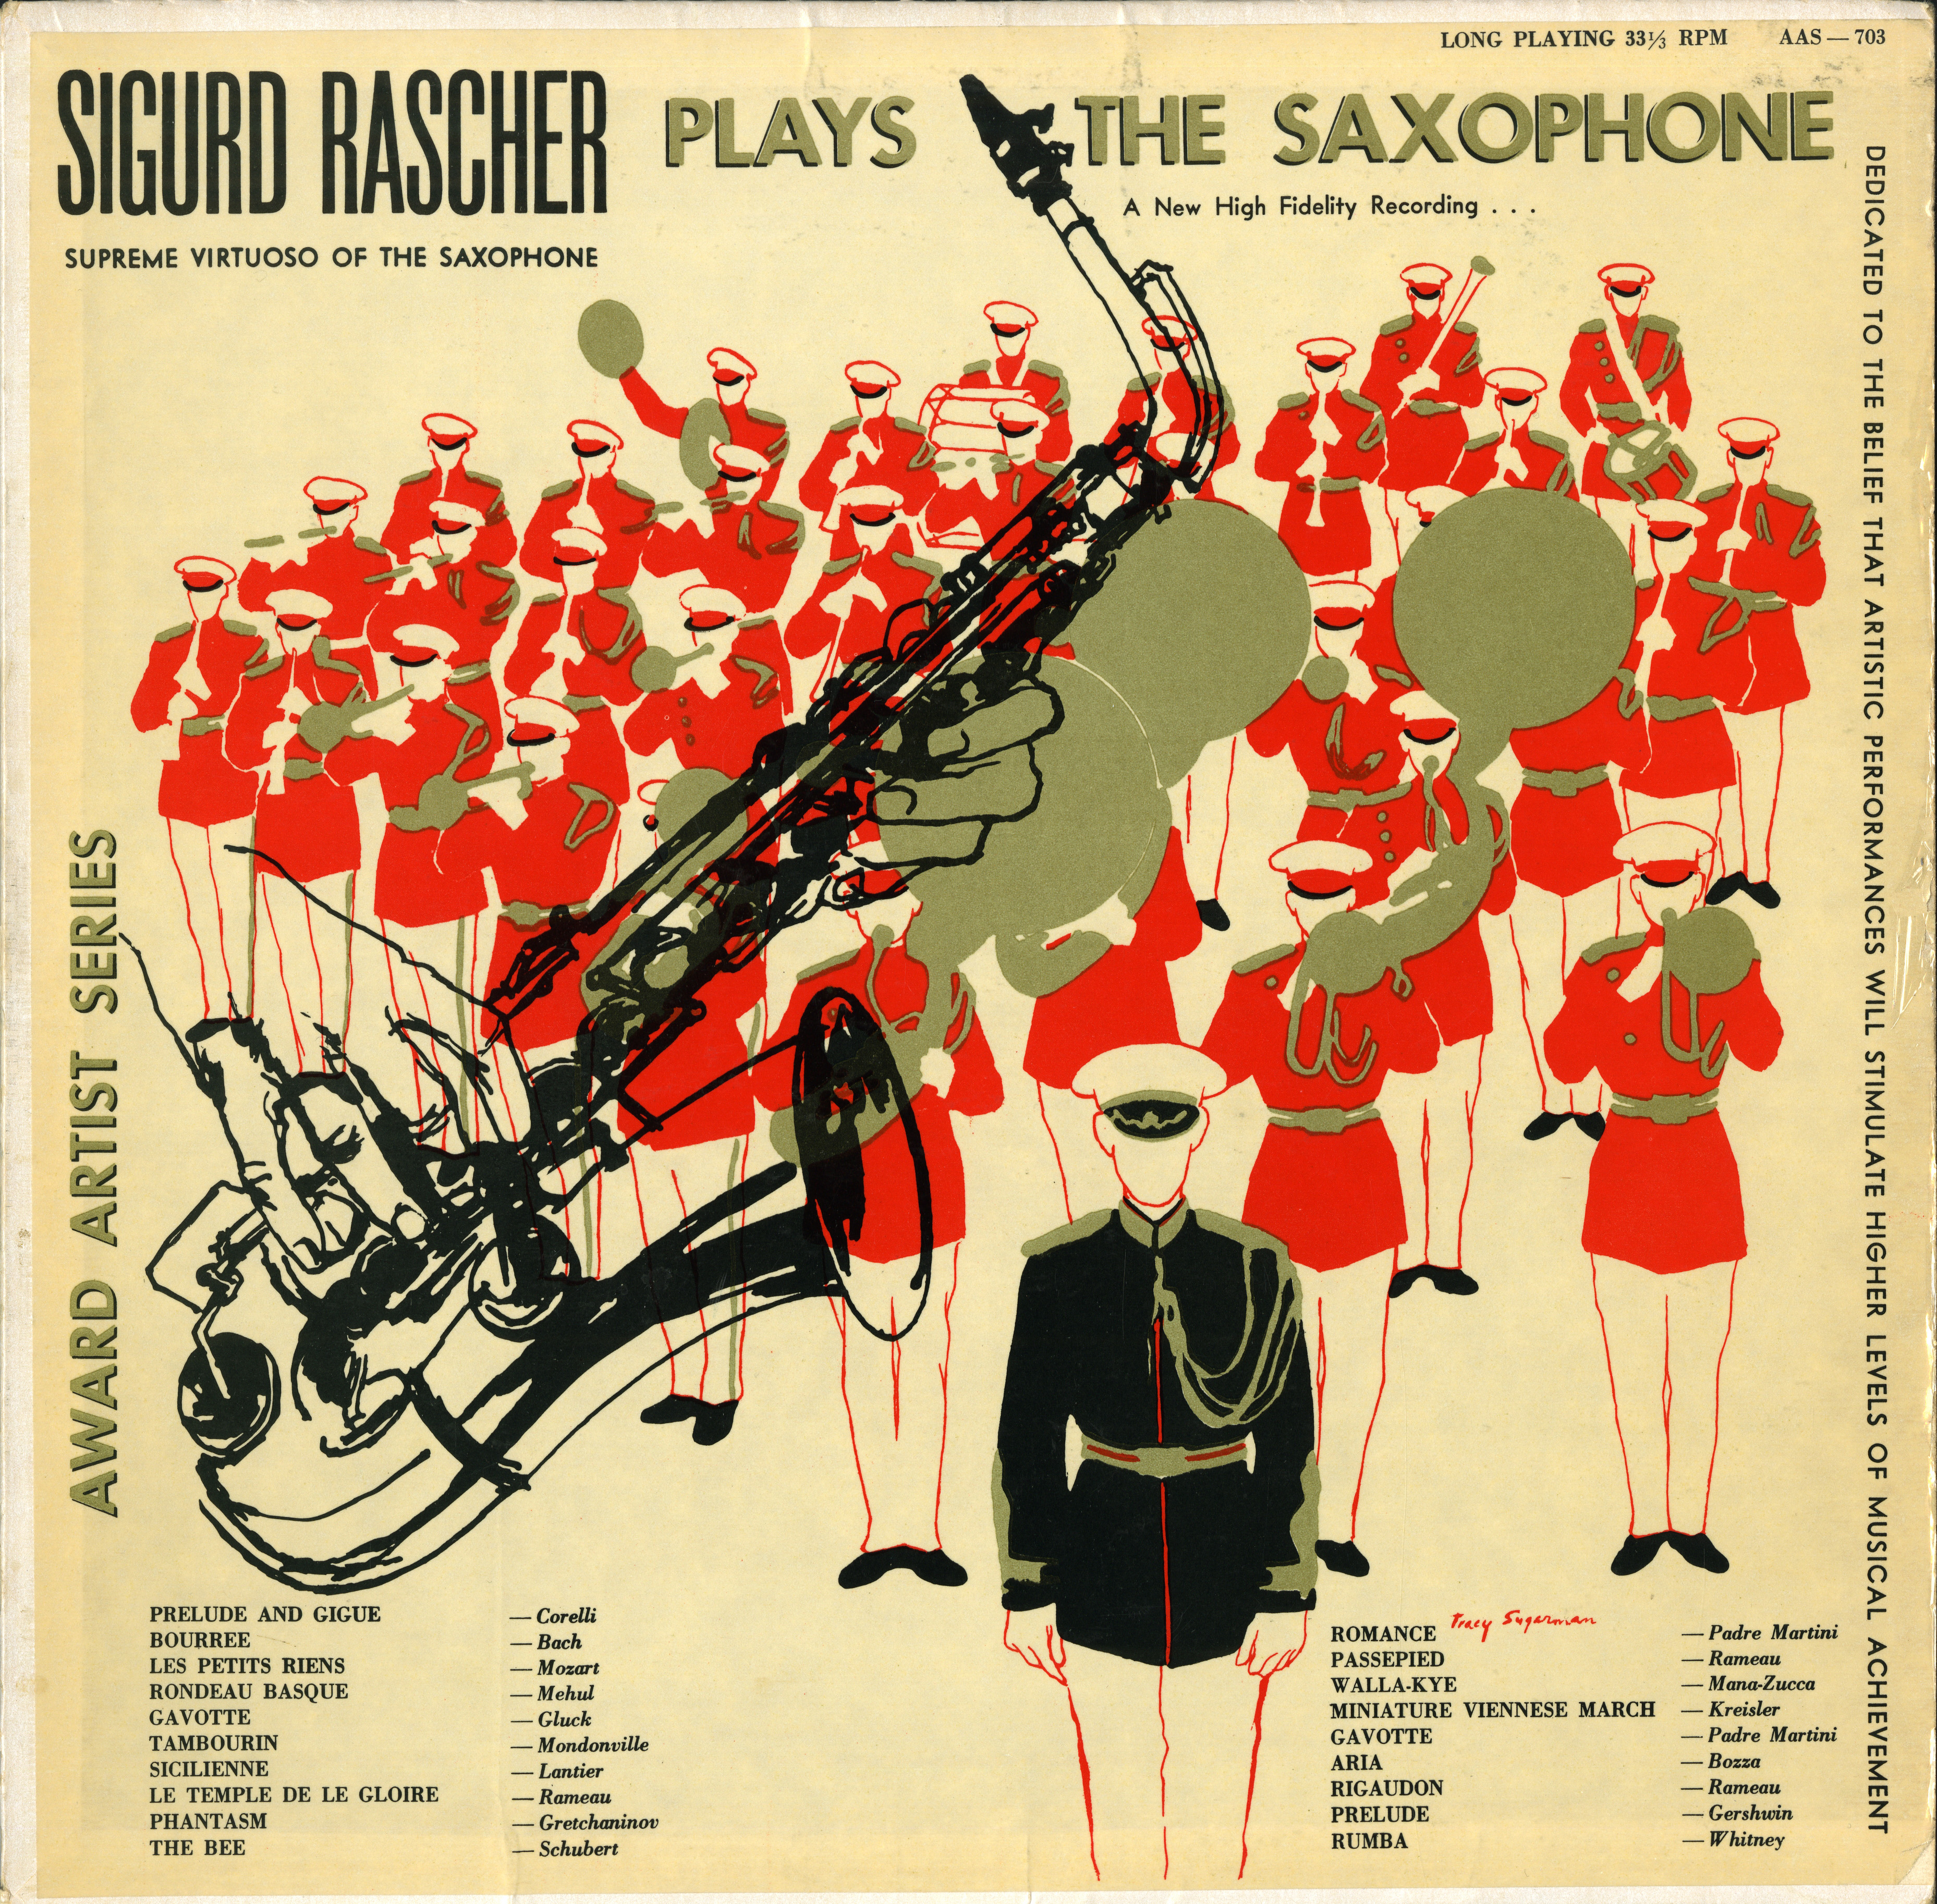 Sigurd Rascher album cover with drawings of saxophones